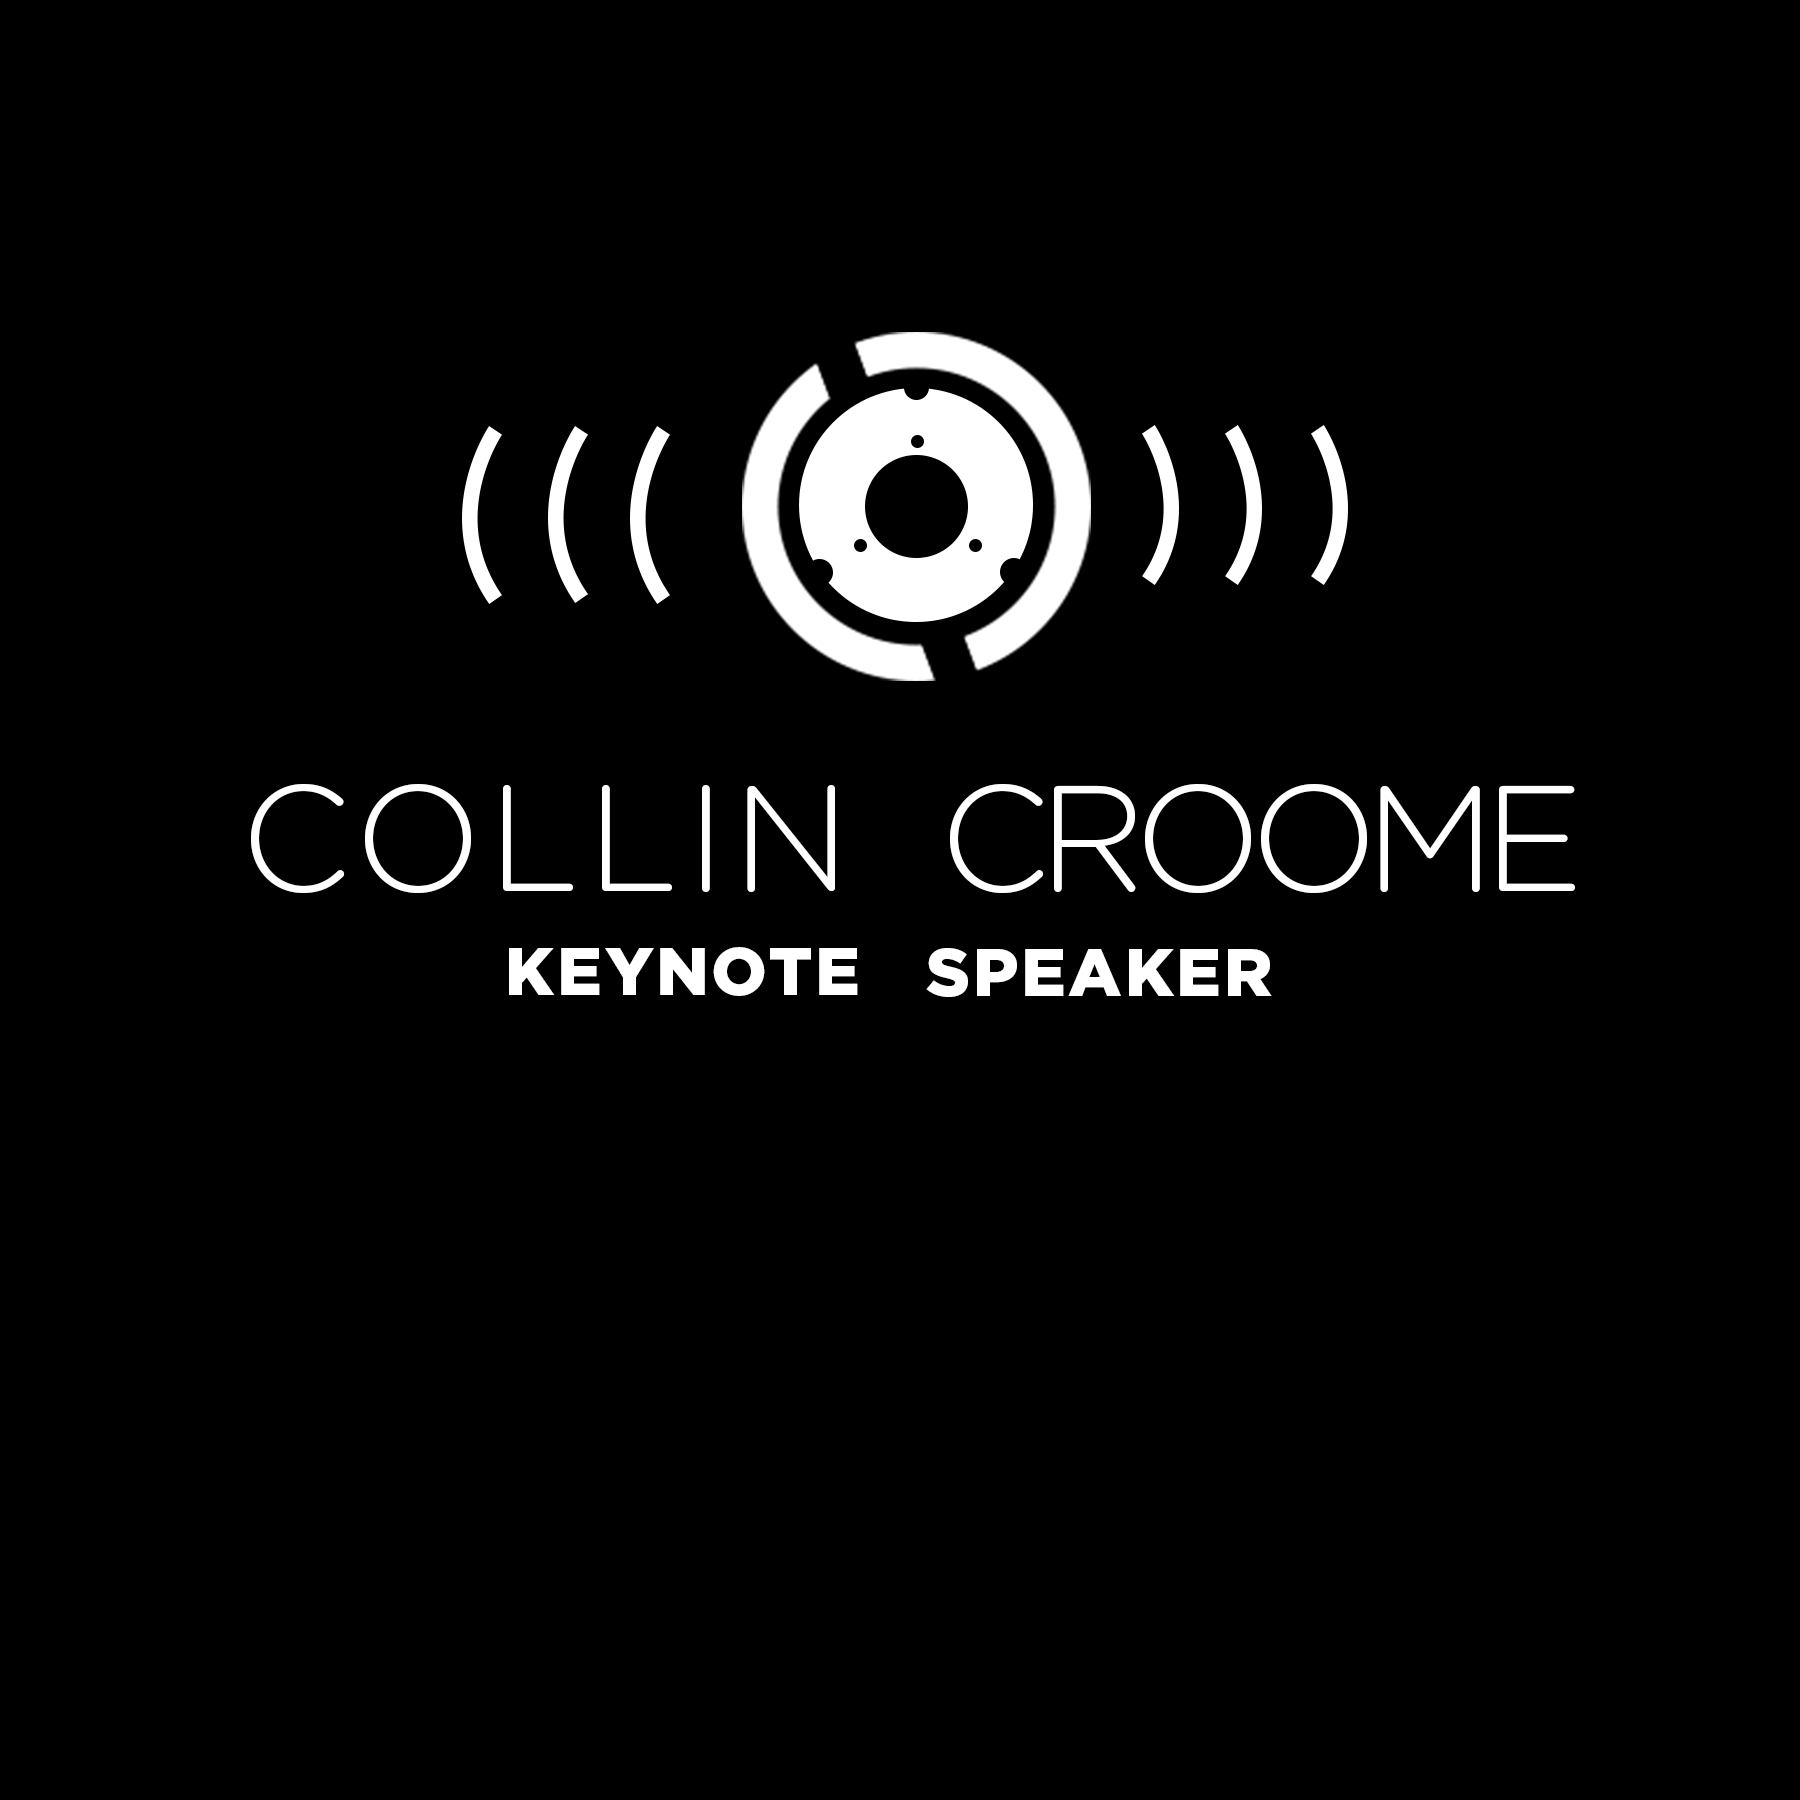 Logo Design by Lemuel Arvin Tanzo - Entry No. 200 in the Logo Design Contest Modern Logo Design for Collin Croome.